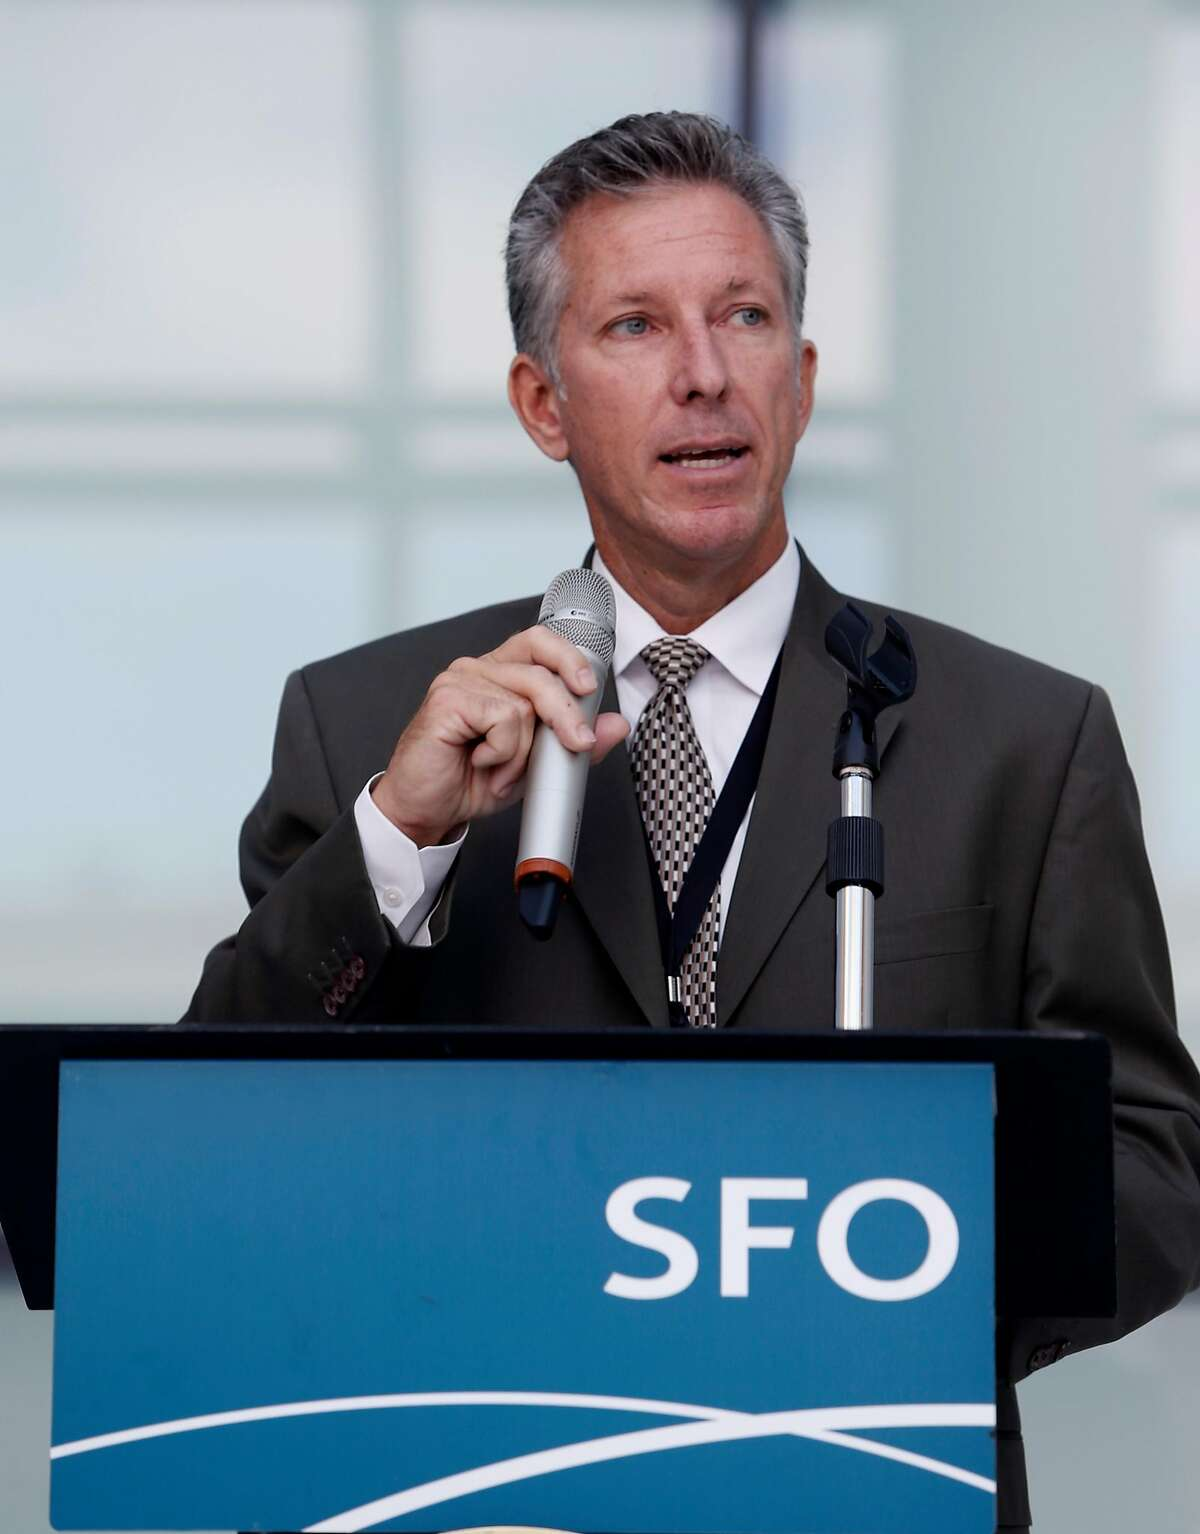 SFO Airport Director Ivar Satero speaks at a ceremony to dedicate the new air traffic control tower in San Francisco, Calif. on Tuesday, Oct. 11, 2016. The iconic 221-foot tall FAA tower becomes fully operational Saturday.